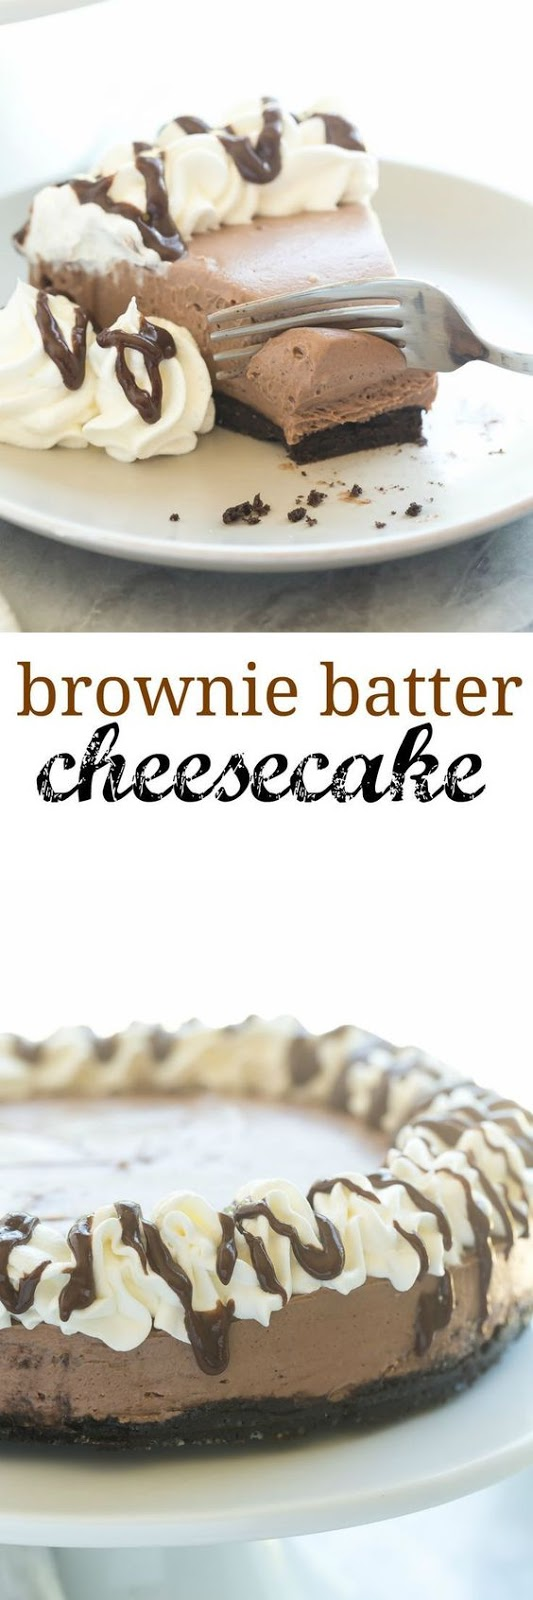 No Bake Brownie Batter Cheesecake Recipe